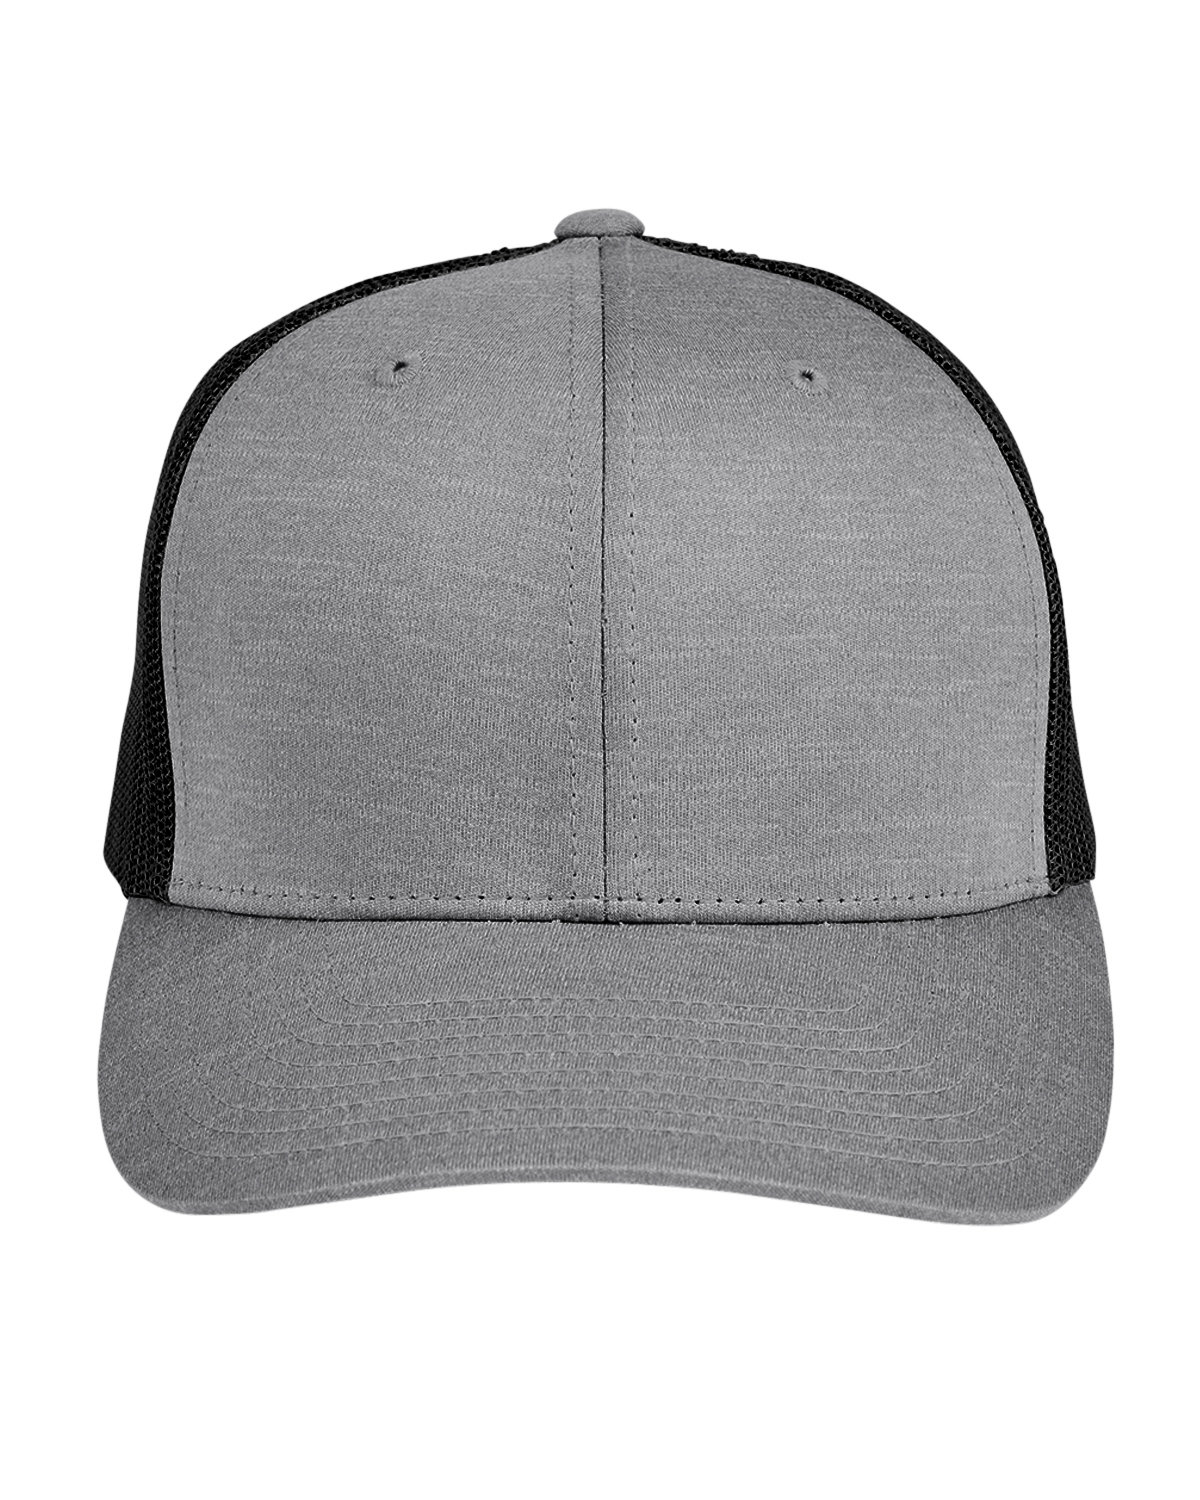 Team 365 by Yupoong® Adult Zone Sonic Heather Trucker Cap DK GRY HTH/ BLK